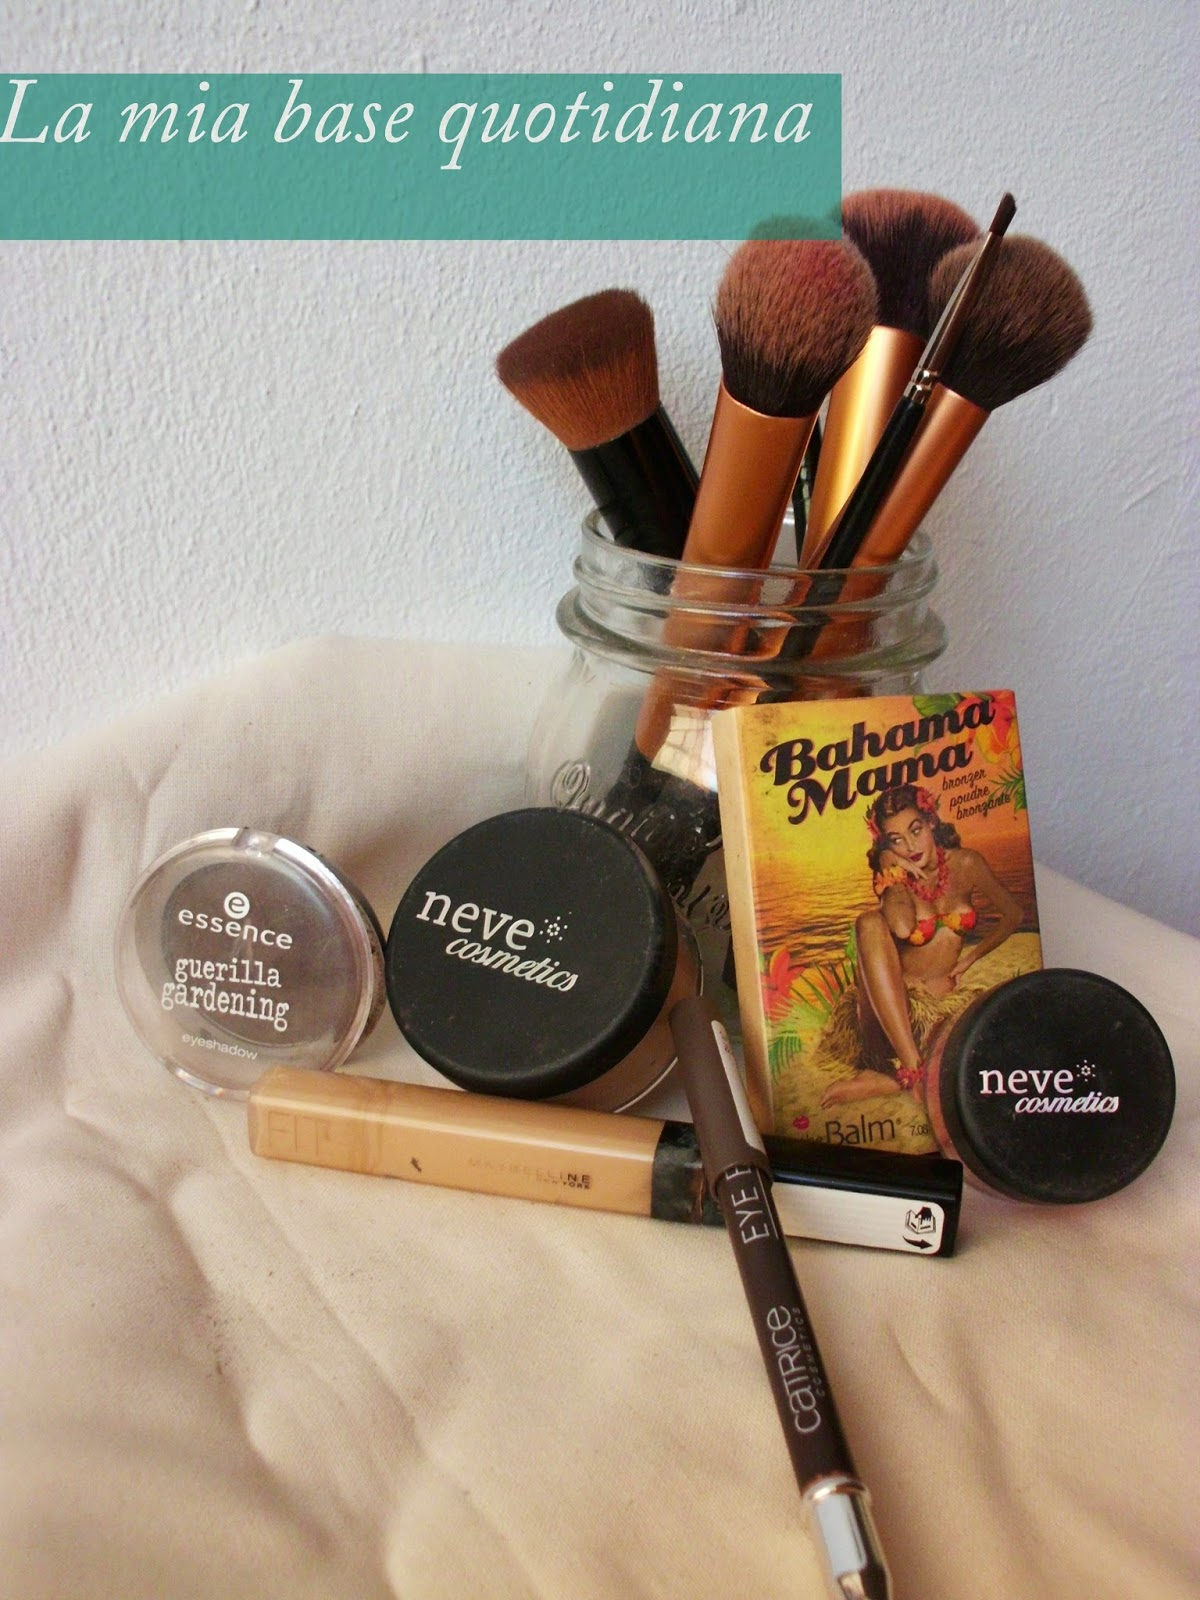 Makeup Routine con Neve cosmetics HIgh Coverage Mineral Foundation Tan Warm, Correttore Fit Me! MAybelline, Bombay, Brow Stylist Catrice, Guerrila Gardening Essence, Bahama Mama The Balm